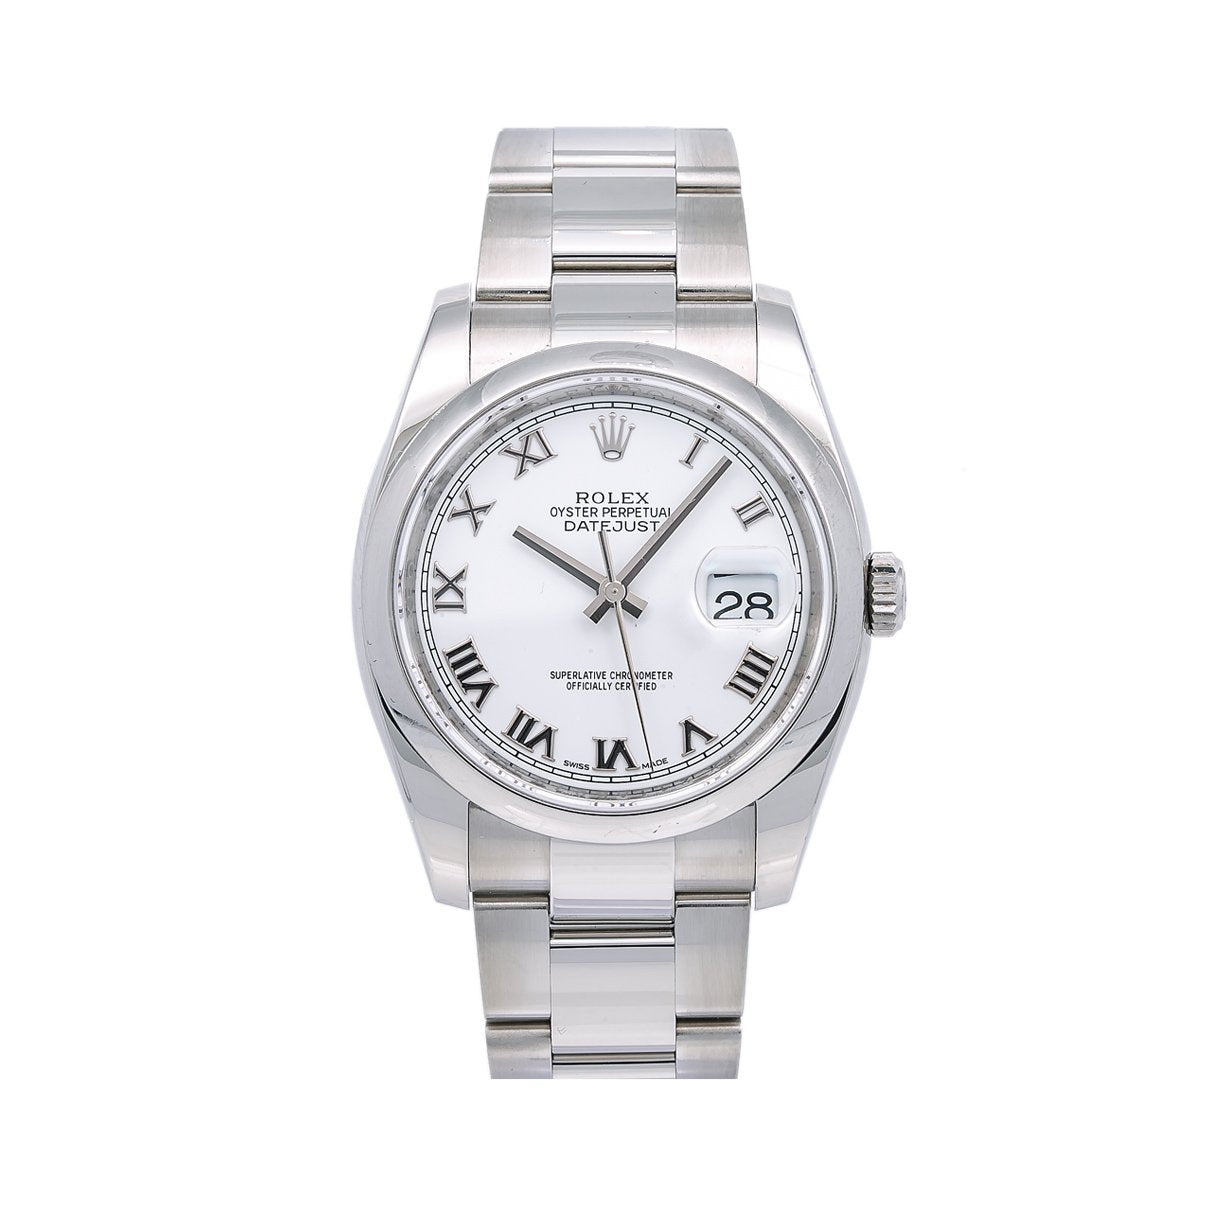 Rolex Datejust 116200 36MM White Dial With Stainless Steel Oyster Bracelet